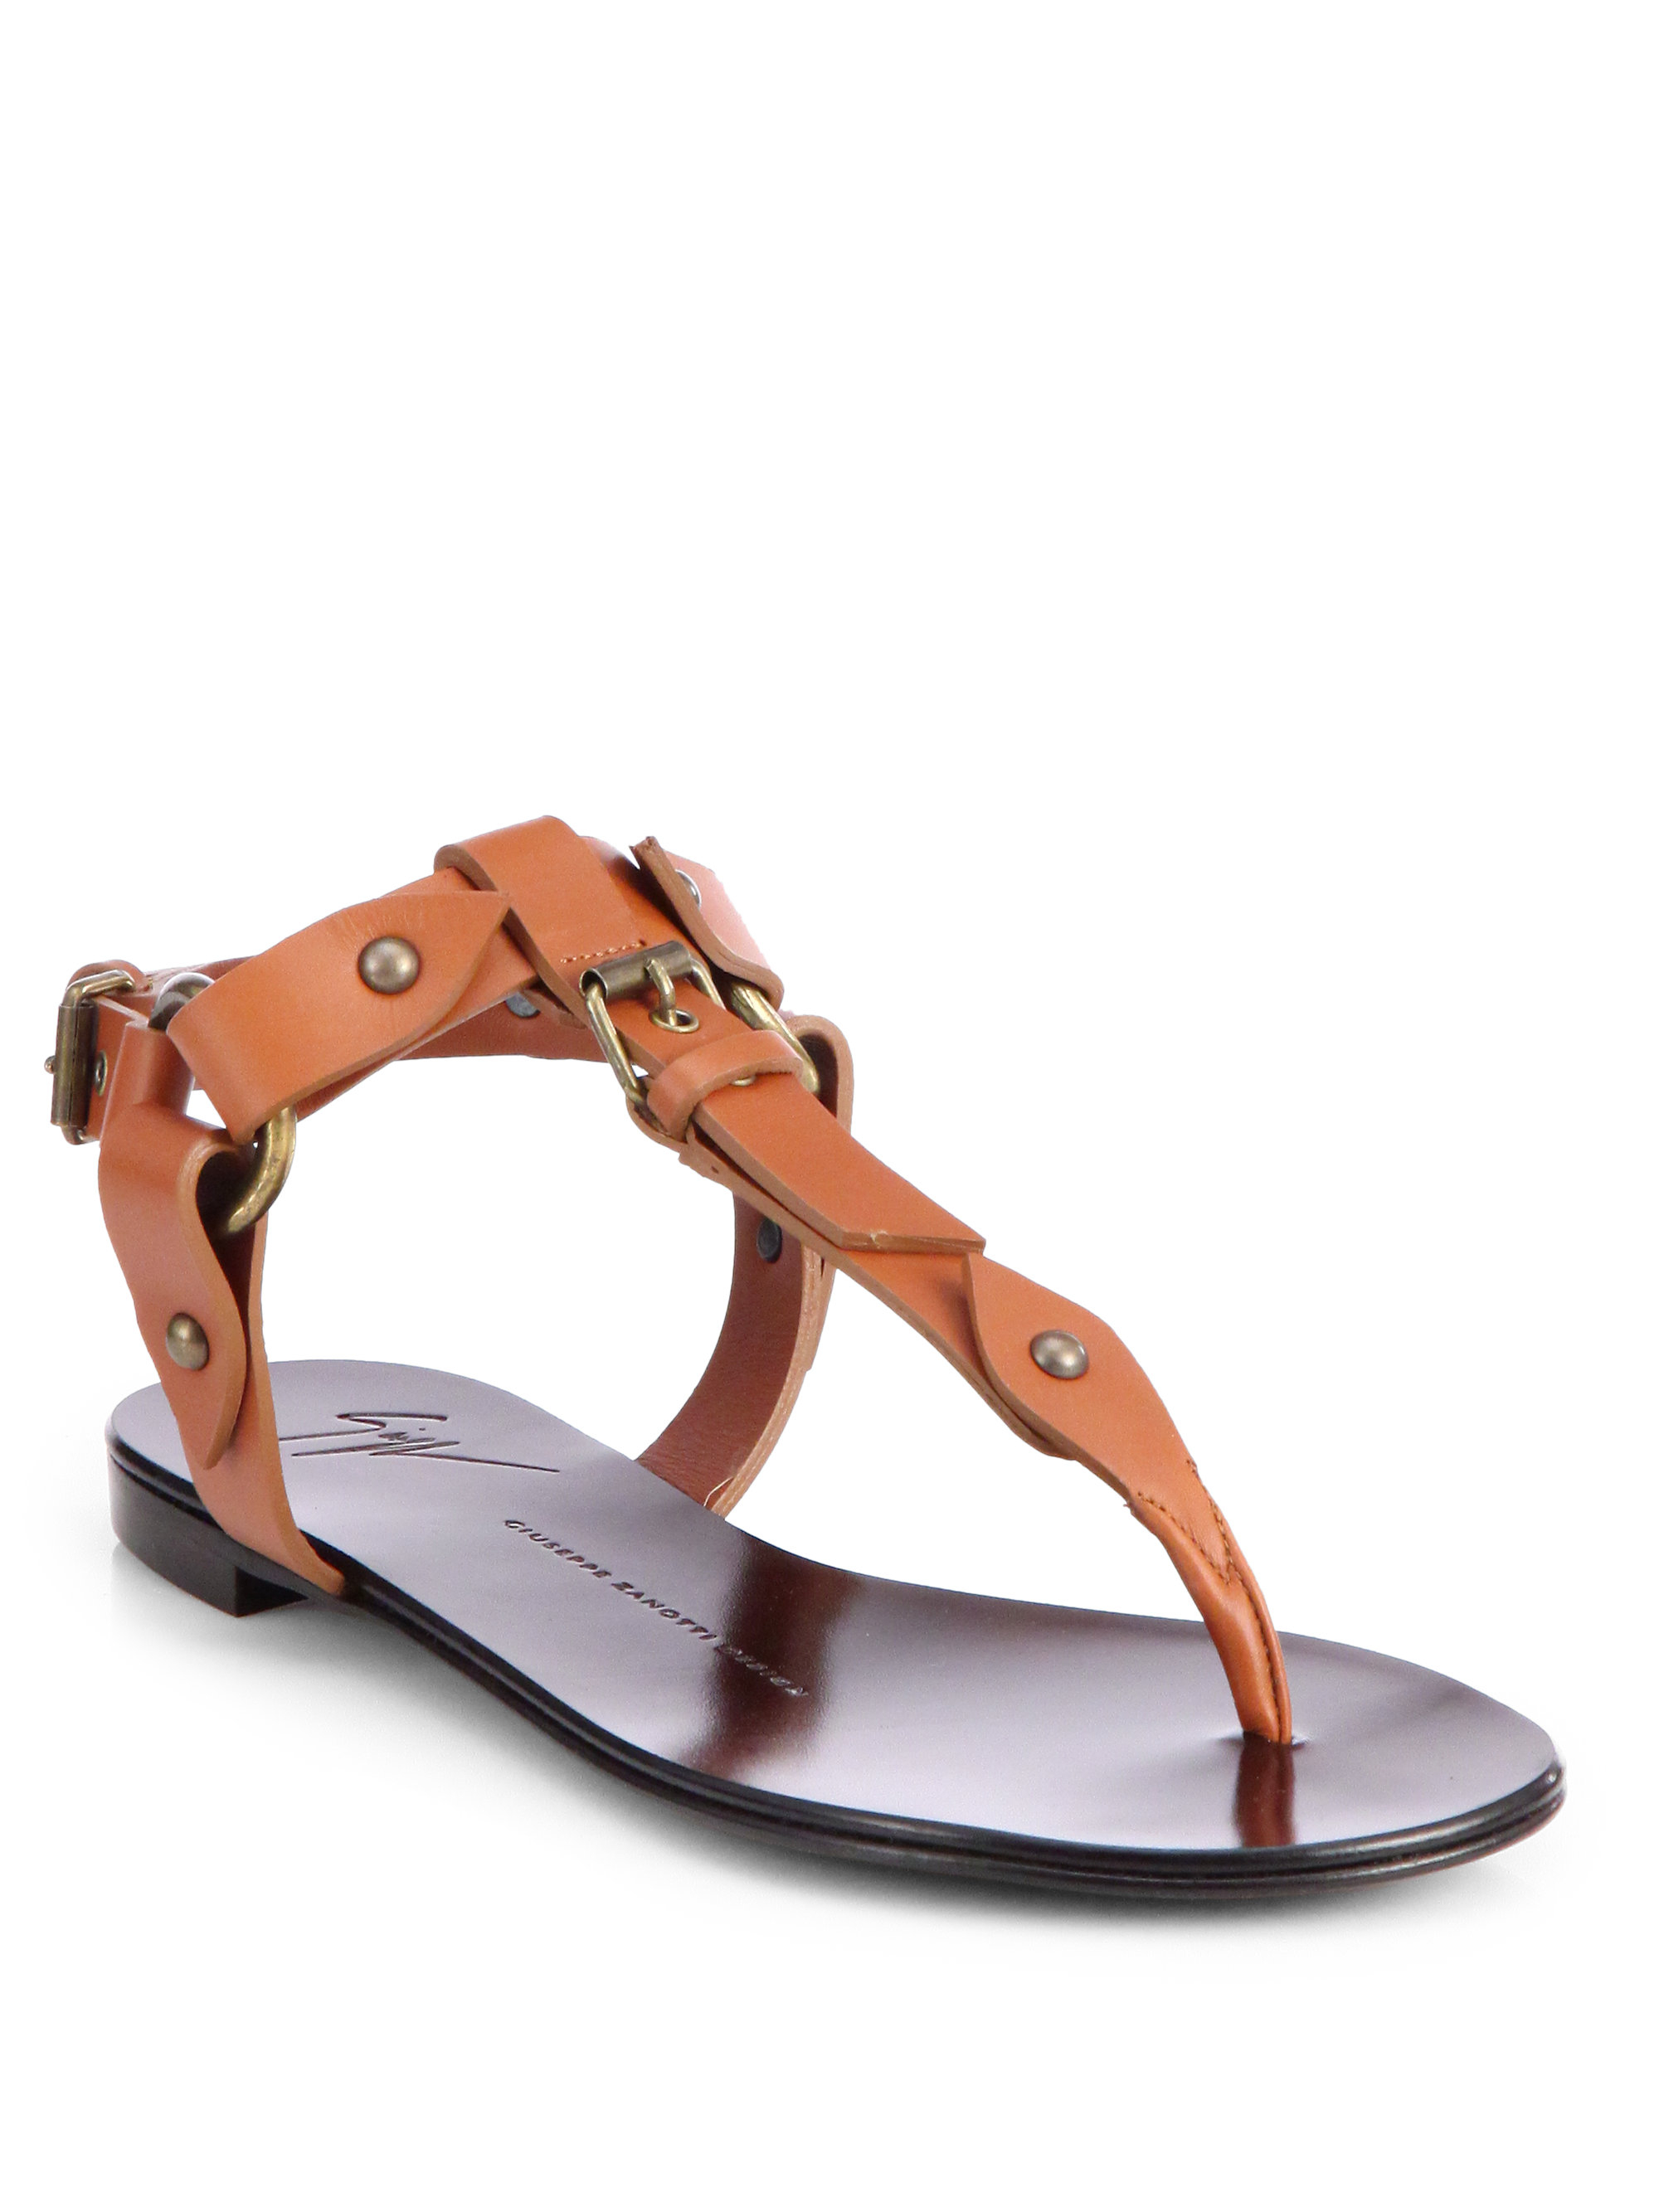 d3a63932b2c Lyst - Giuseppe Zanotti Buckle Thong Sandals in Brown